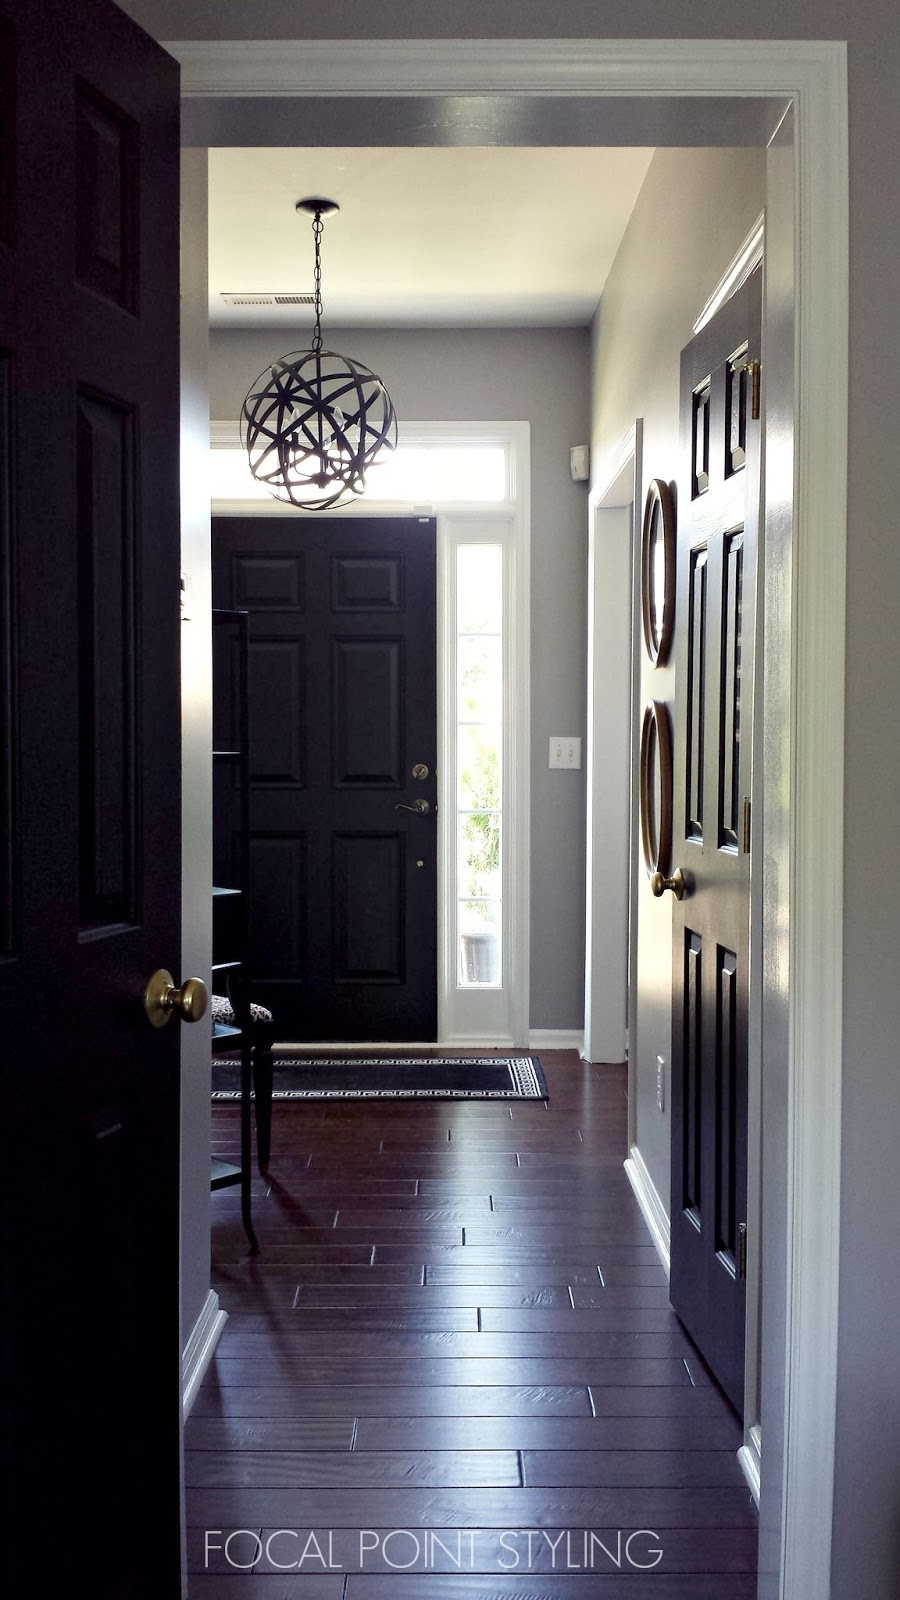 Painting Interior Doors Black : Focal point styling how to paint interior doors black